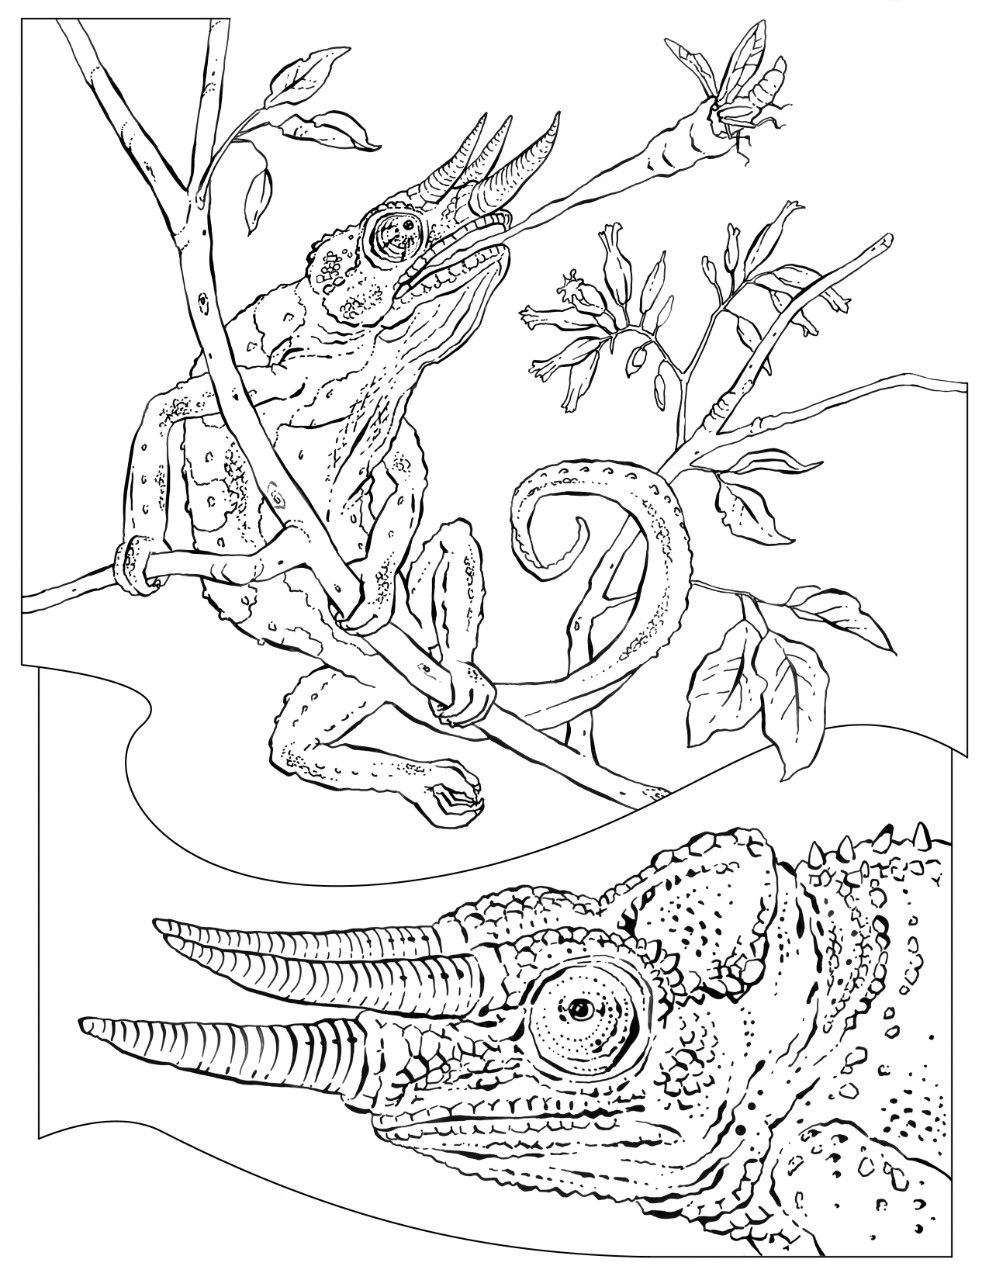 national geographic kids coloring pages national geographic coloring fish coloring pages geographic national coloring pages kids